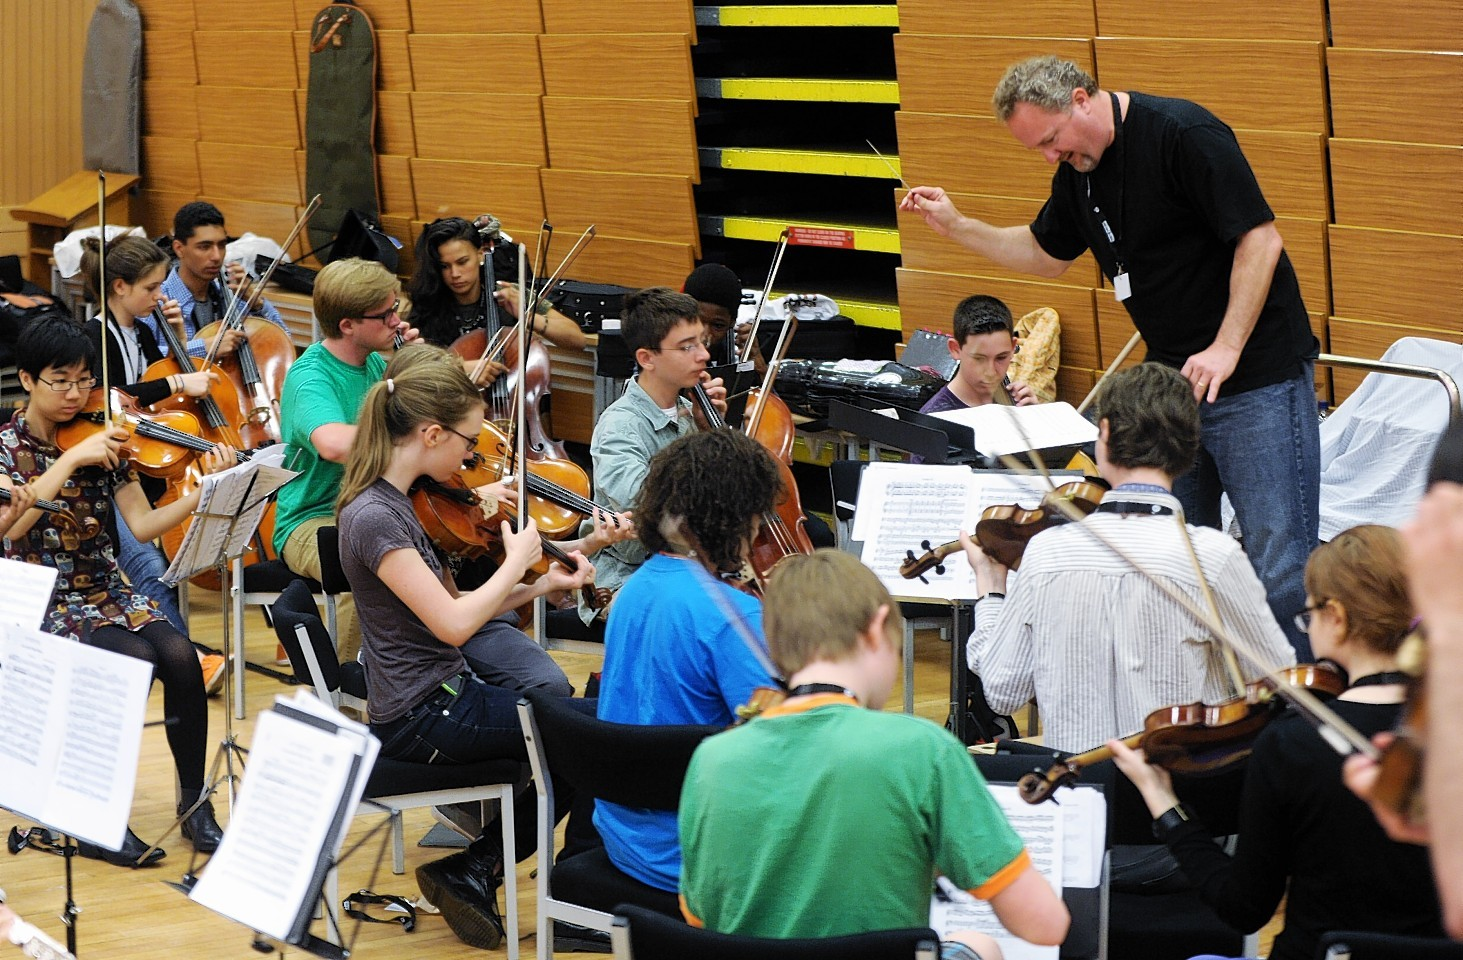 Jeffrey Grogan leads the Youth Orchestra during a rehearsal. Credit: Colin Rennie.